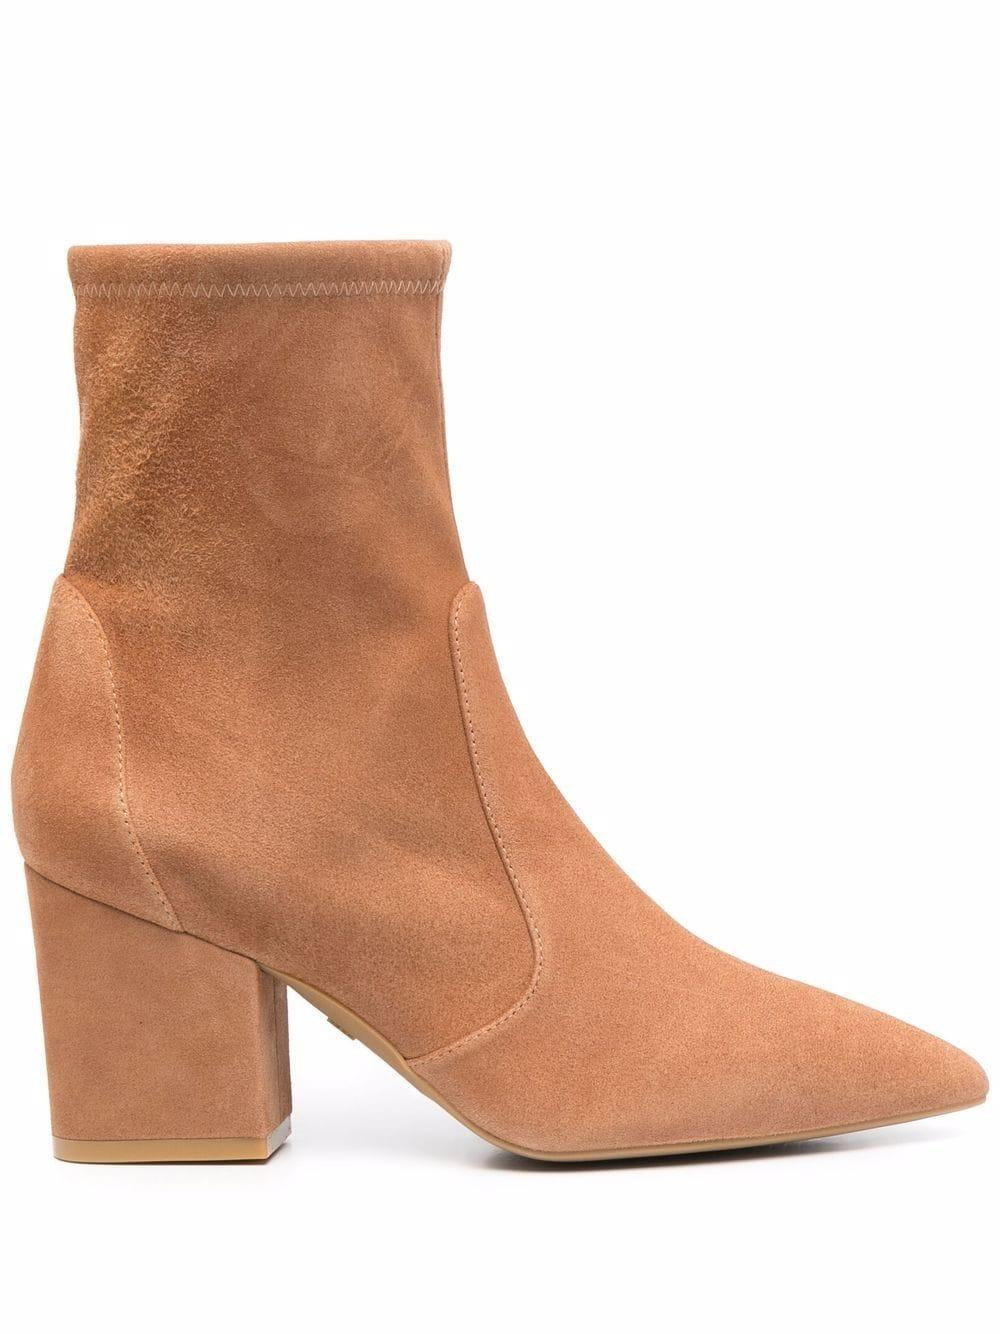 Vernell Stretch Suede Bootie Item # VERNELL75